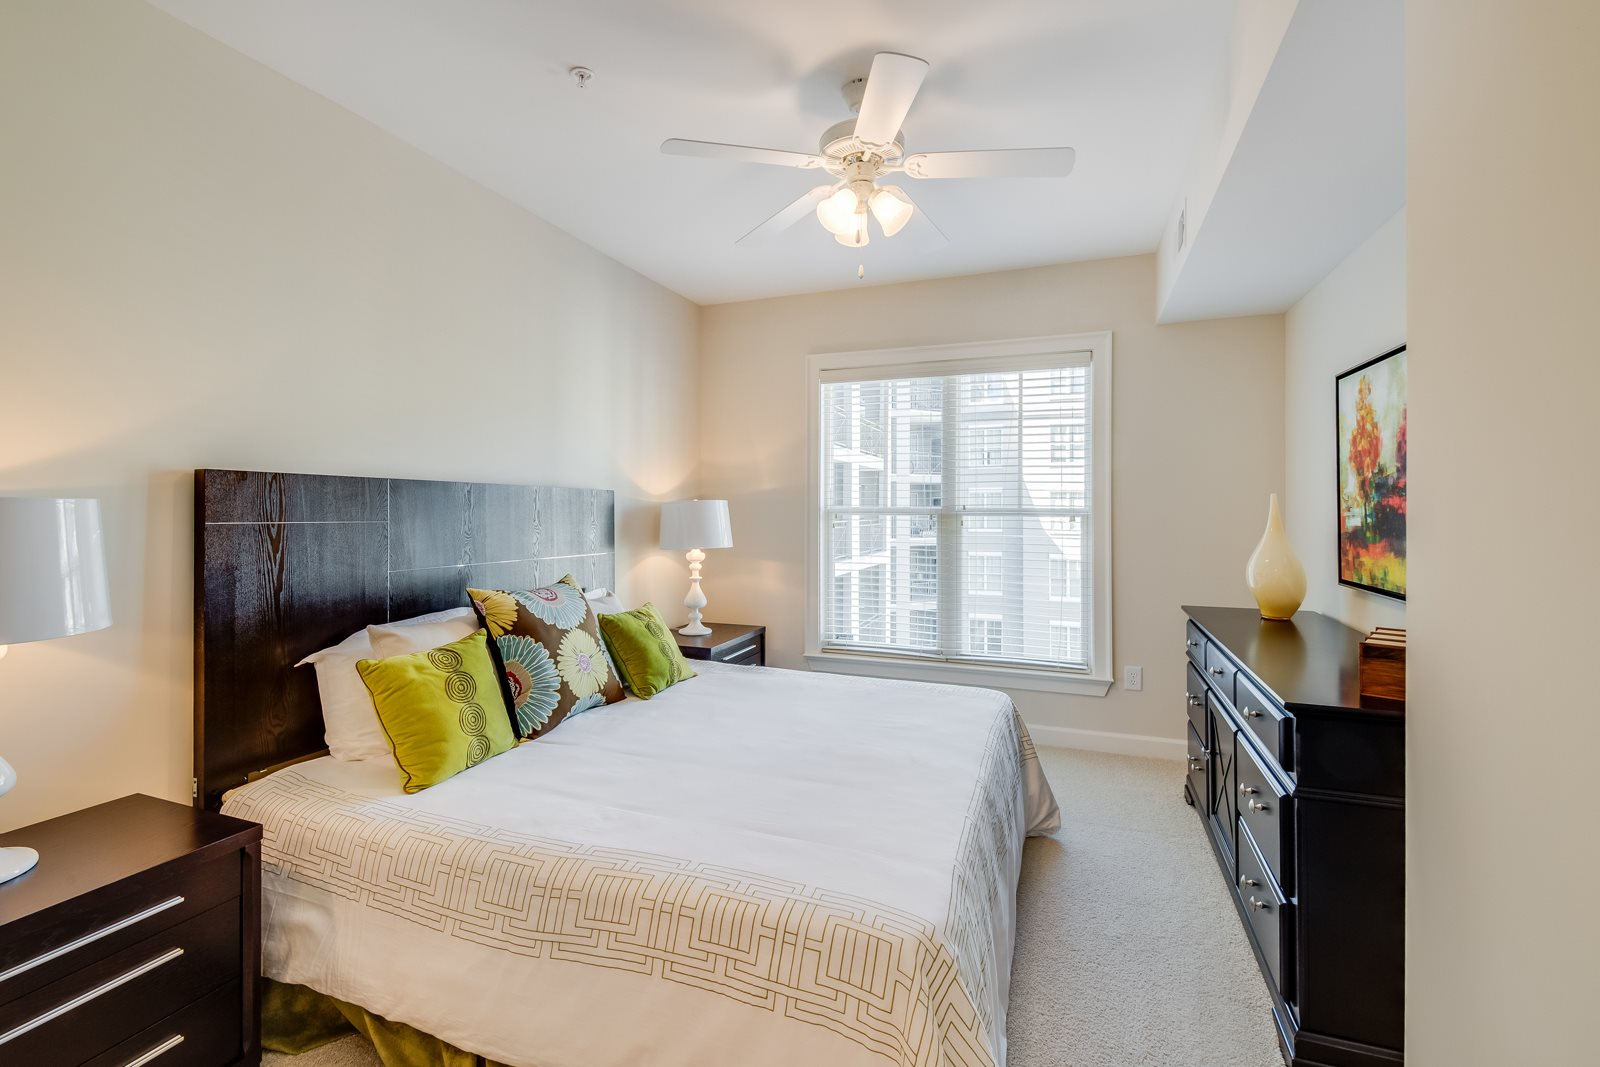 Spacious Master Bedrooms with Space for King-Sized Beds at Windsor at Brookhaven, 305 Brookhaven Ave., GA